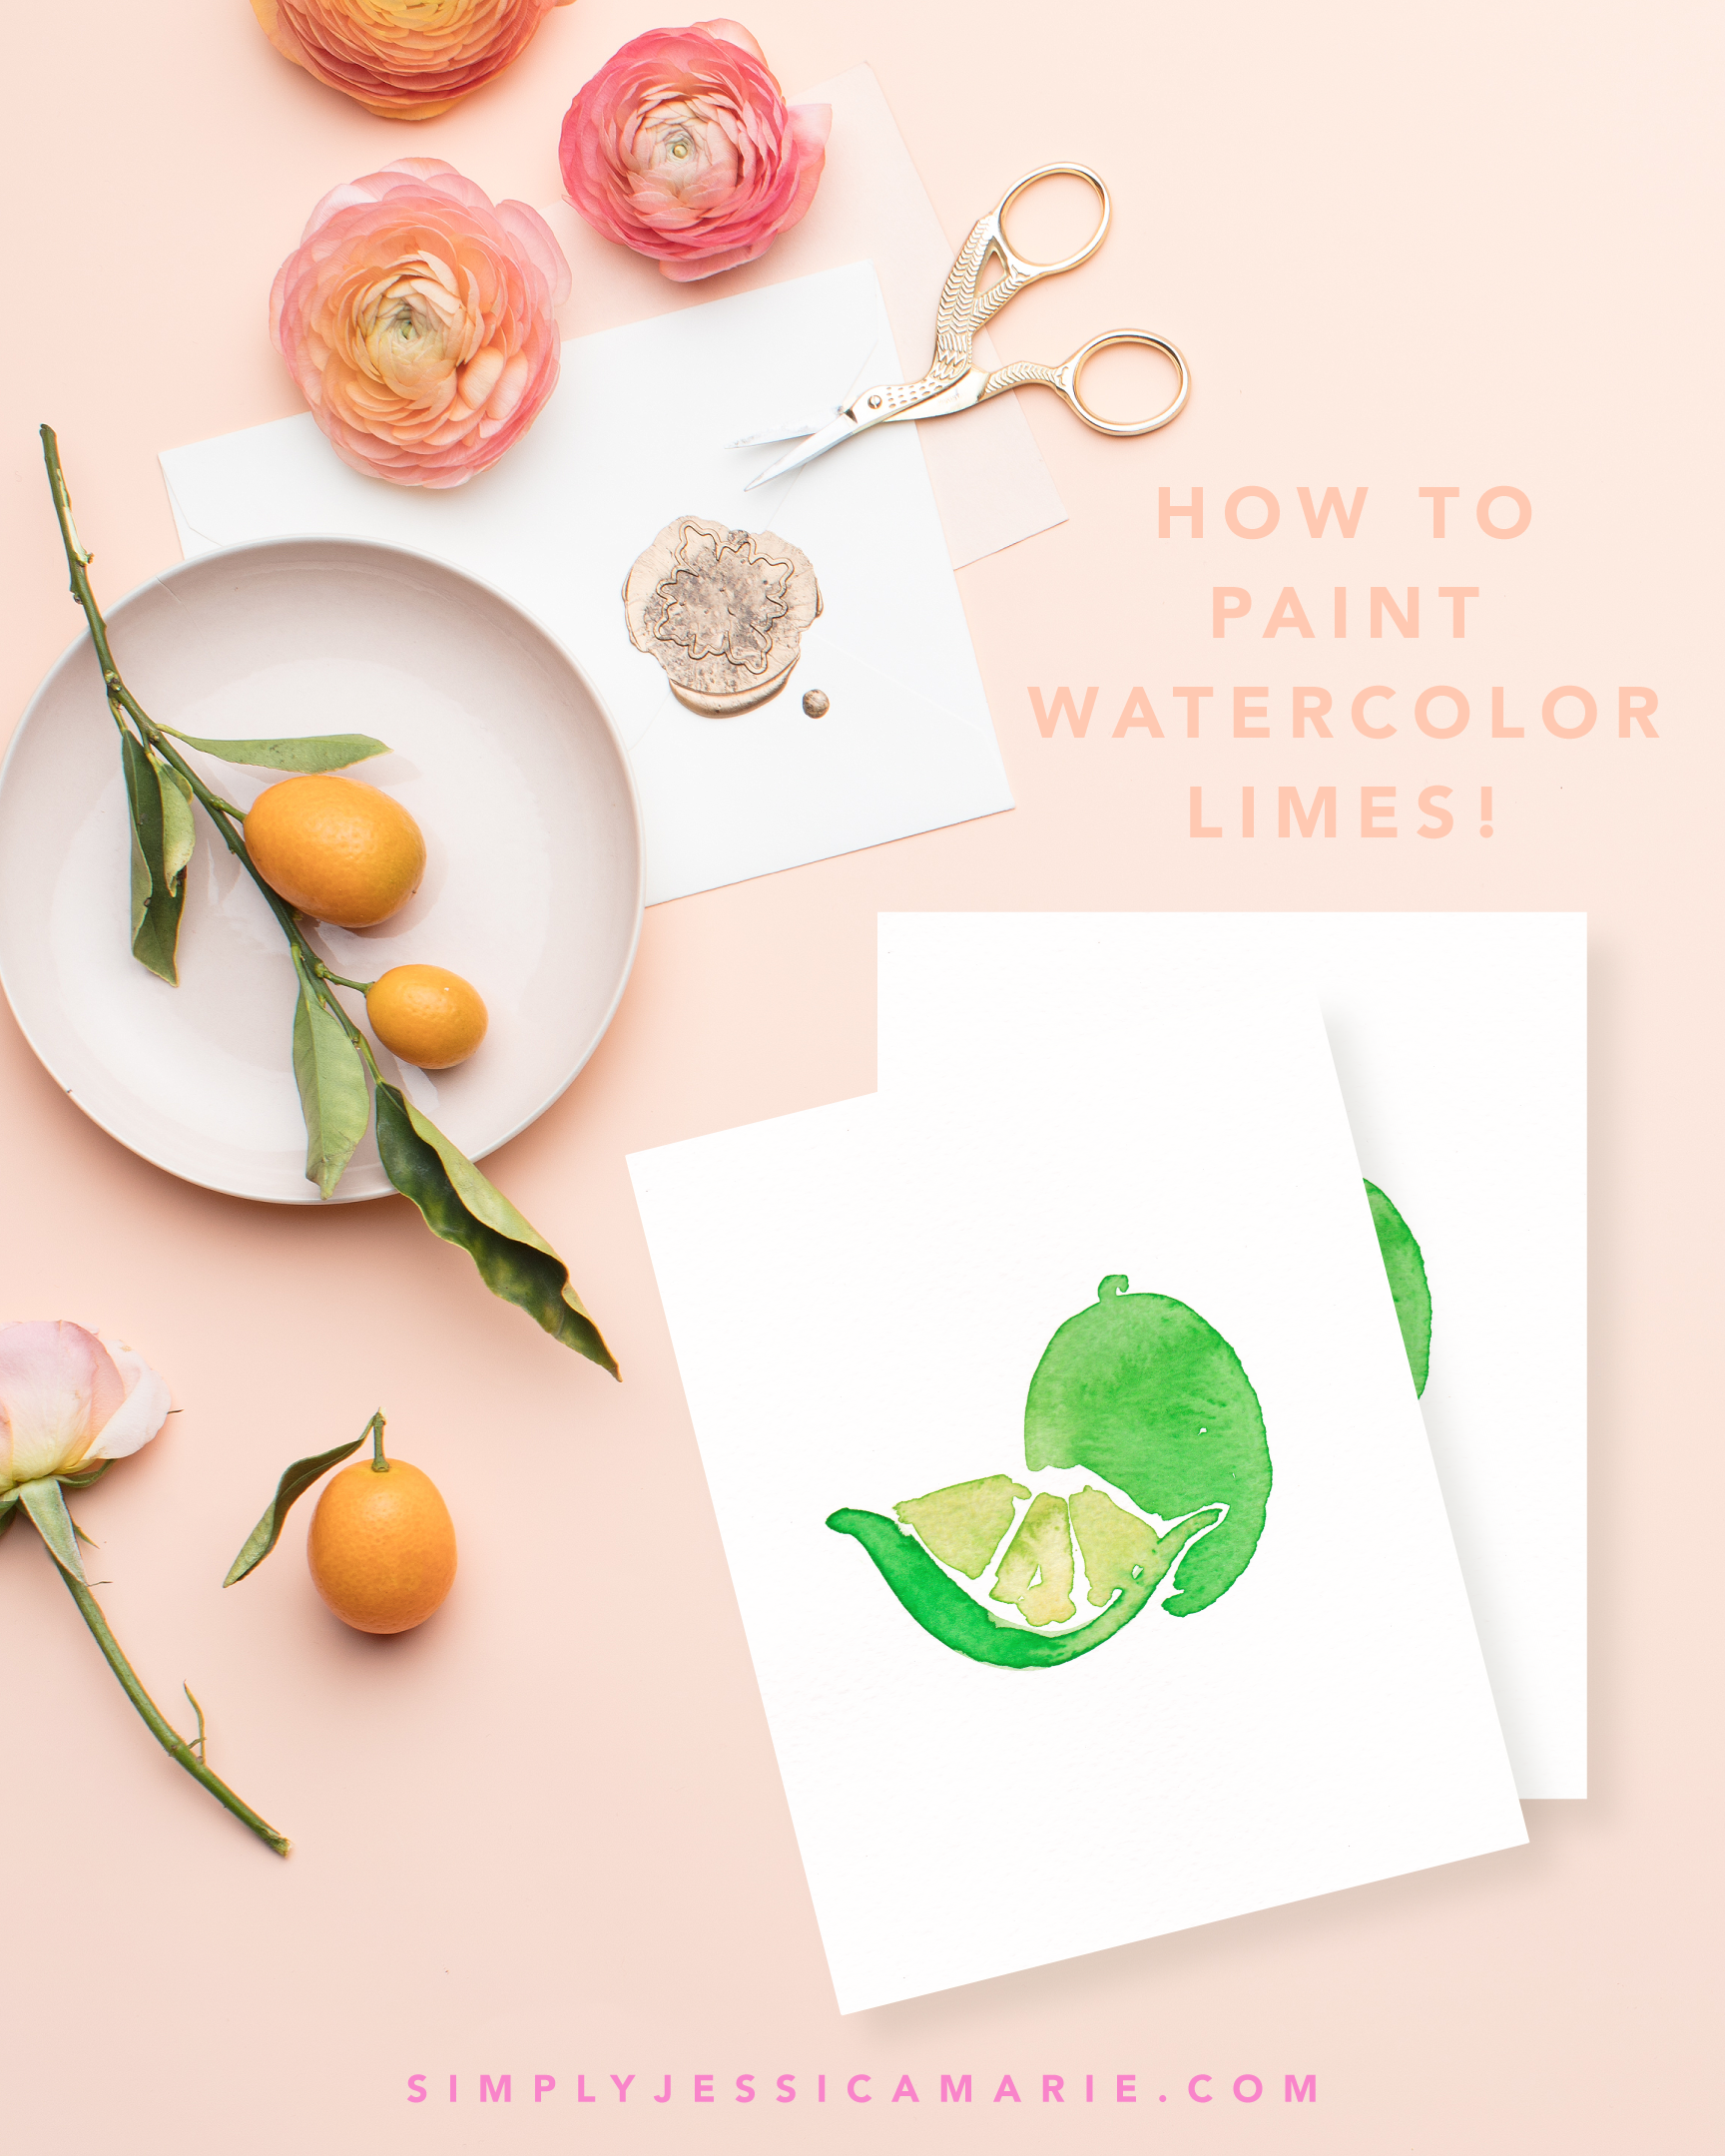 How to paint watercolor limes! Fun and free watercolor videos by Simply Jessica Marie! Learn to mix new colors each week and paint with that color! | SC Stockshop